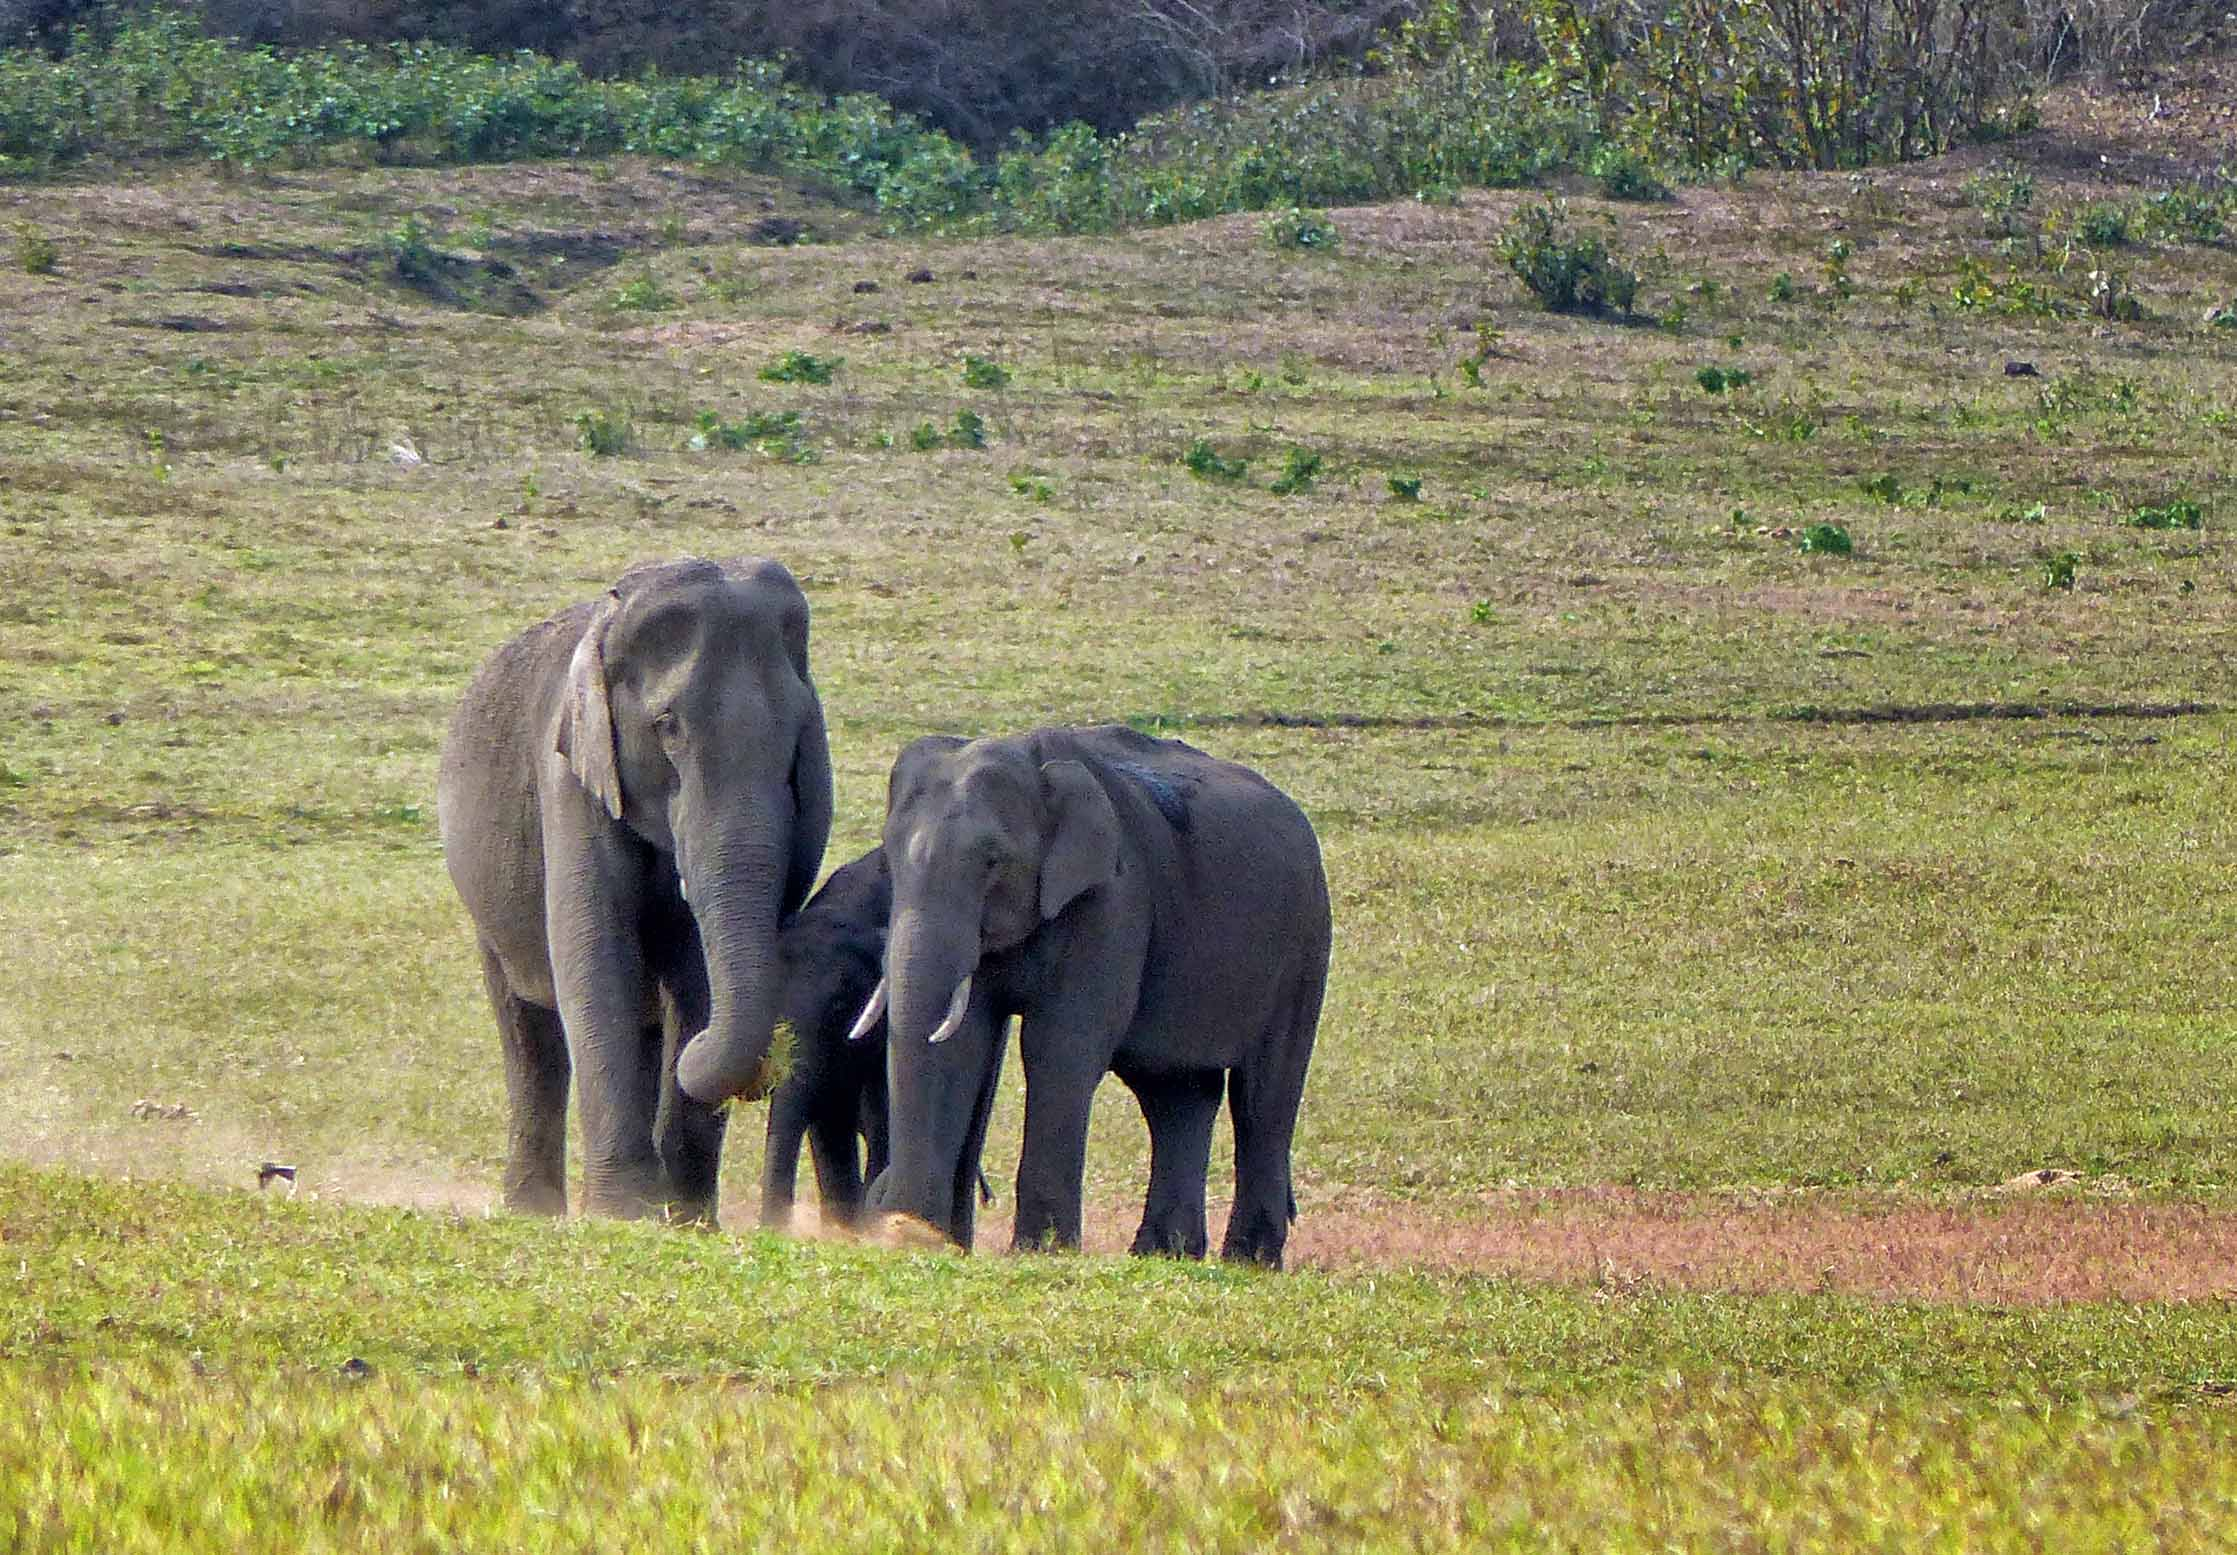 Two adult elephants with calf sheltering between them